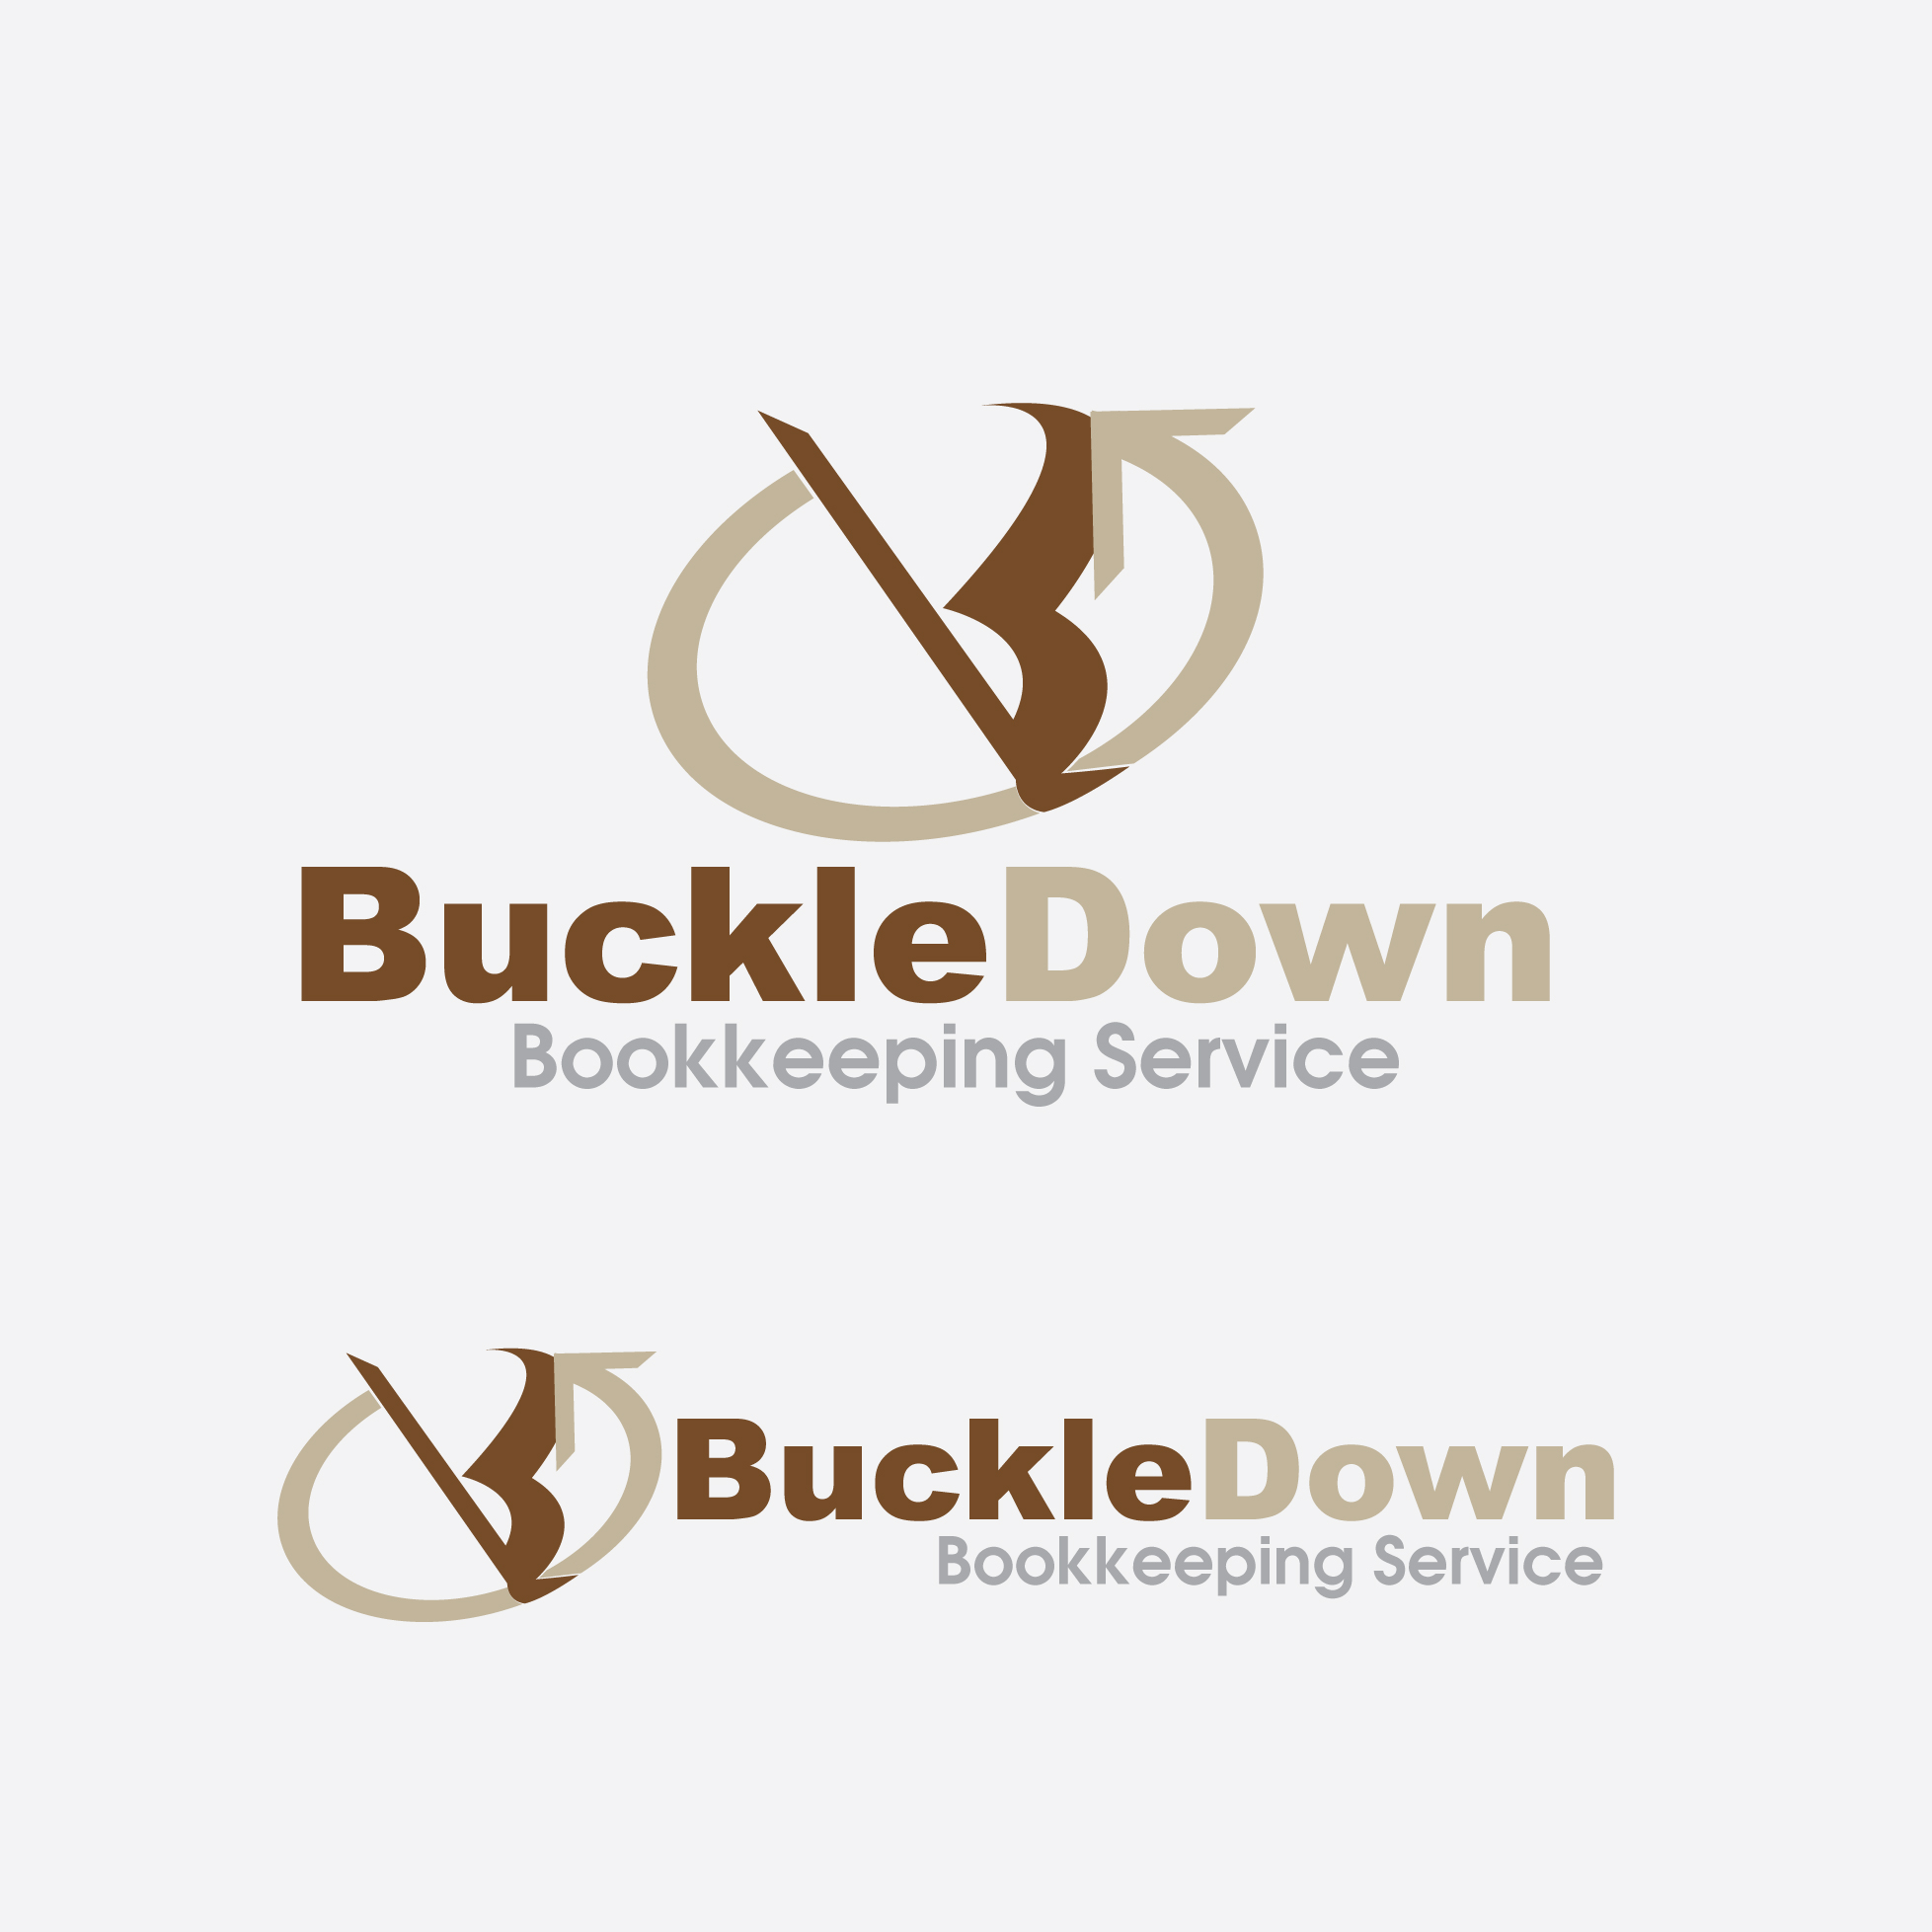 Logo Design by stormbighit - Entry No. 35 in the Logo Design Contest Unique Logo Design Wanted for Buckle Down Bookkeeping Service.